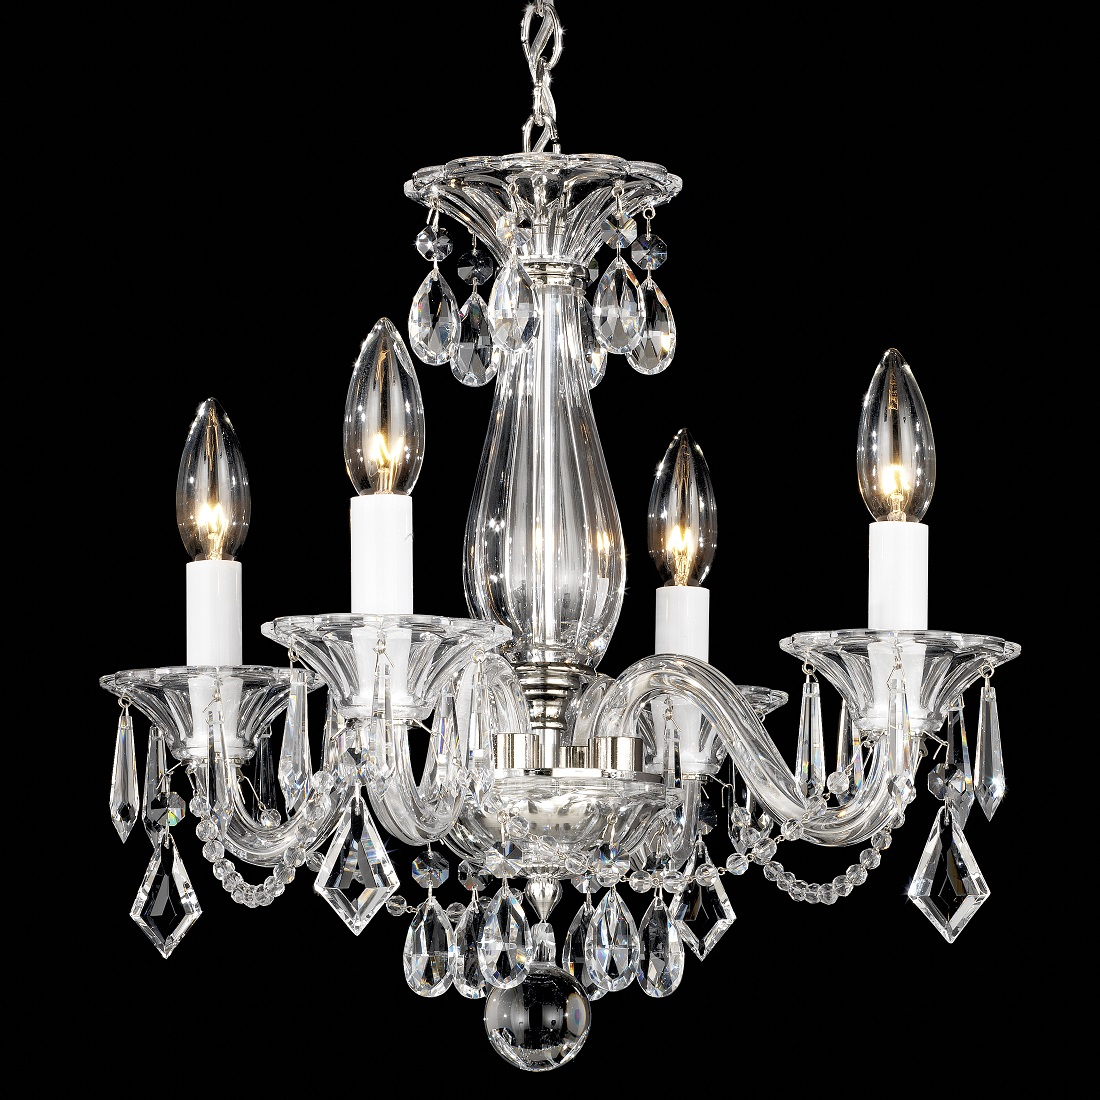 Schonbek Allegro 6994 Chandeliers on Sale Brooklyn, New York by Accentuations Brand